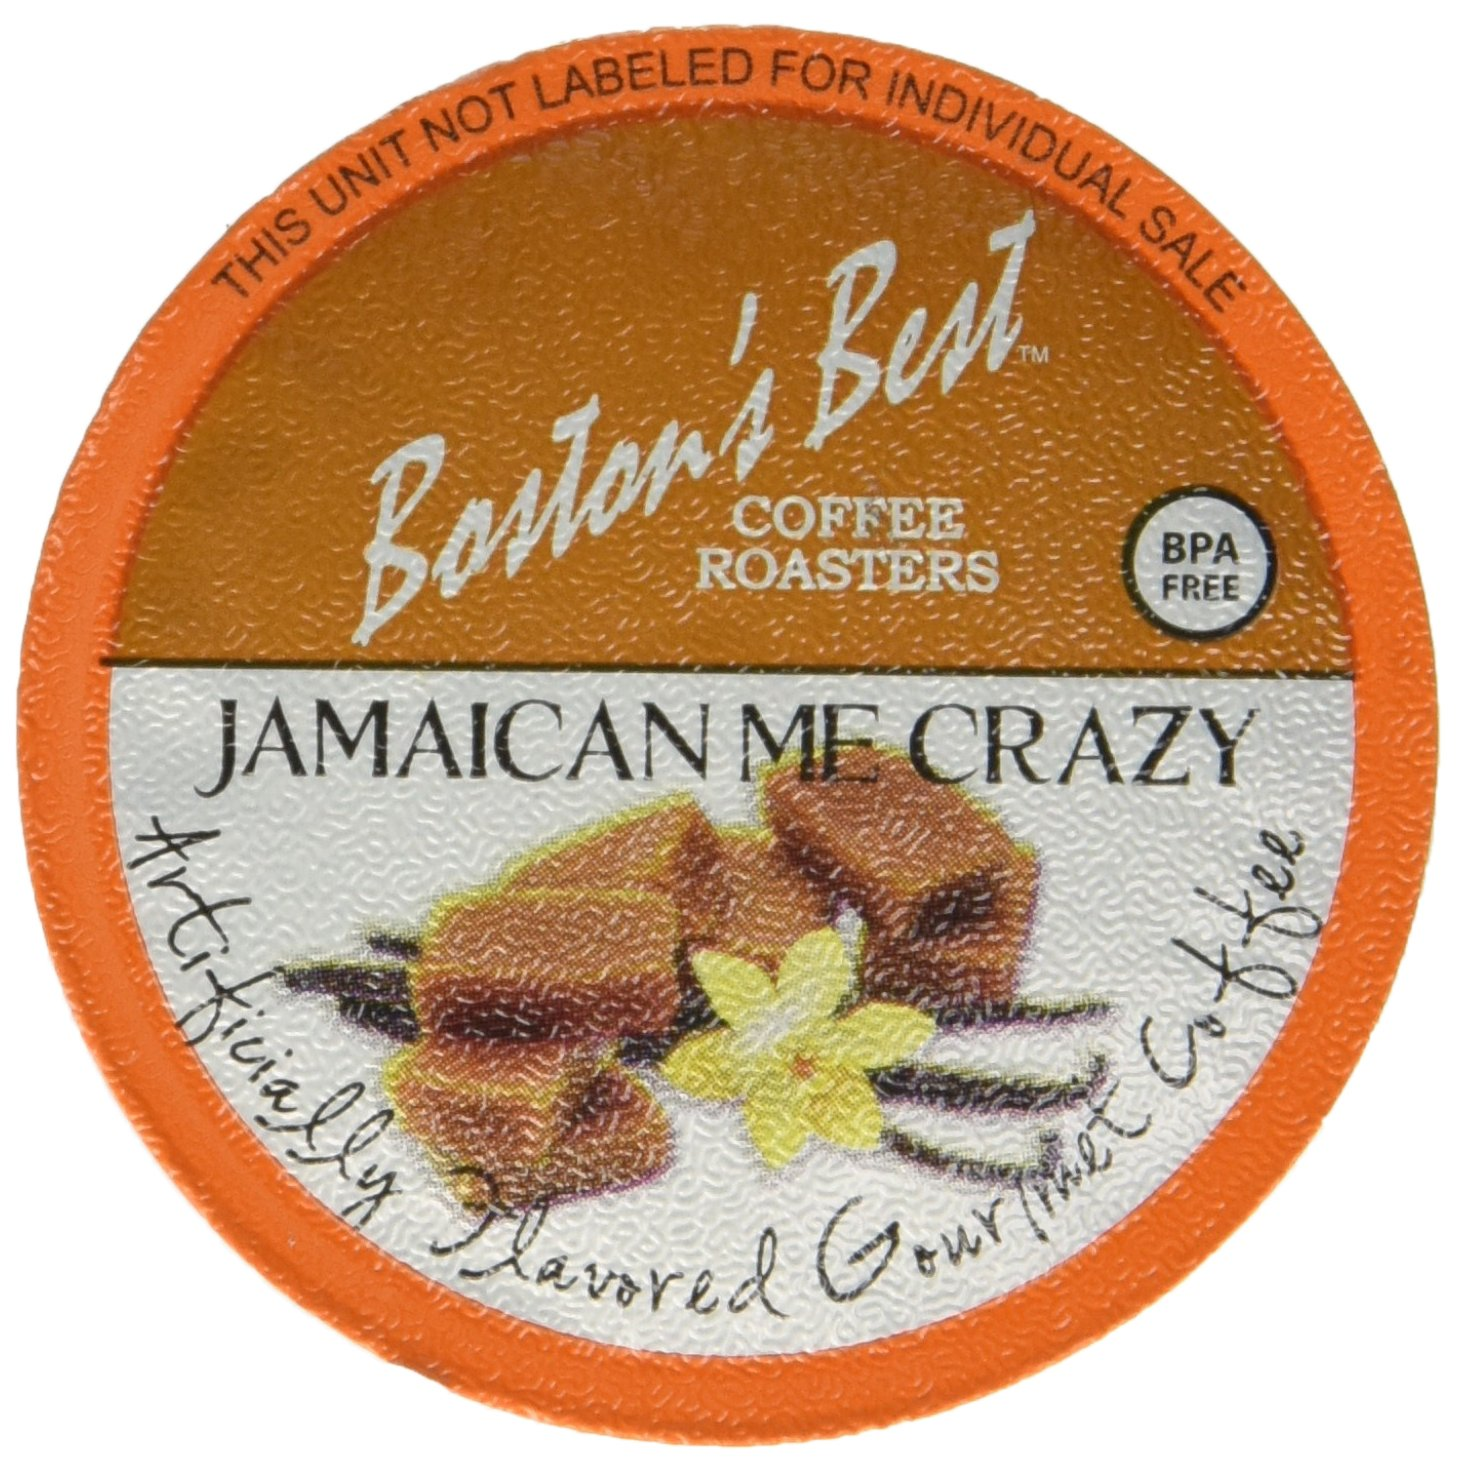 Bostons Best Single Serve K-Cup Coffee, Jamaican Me Crazy, 80 Count